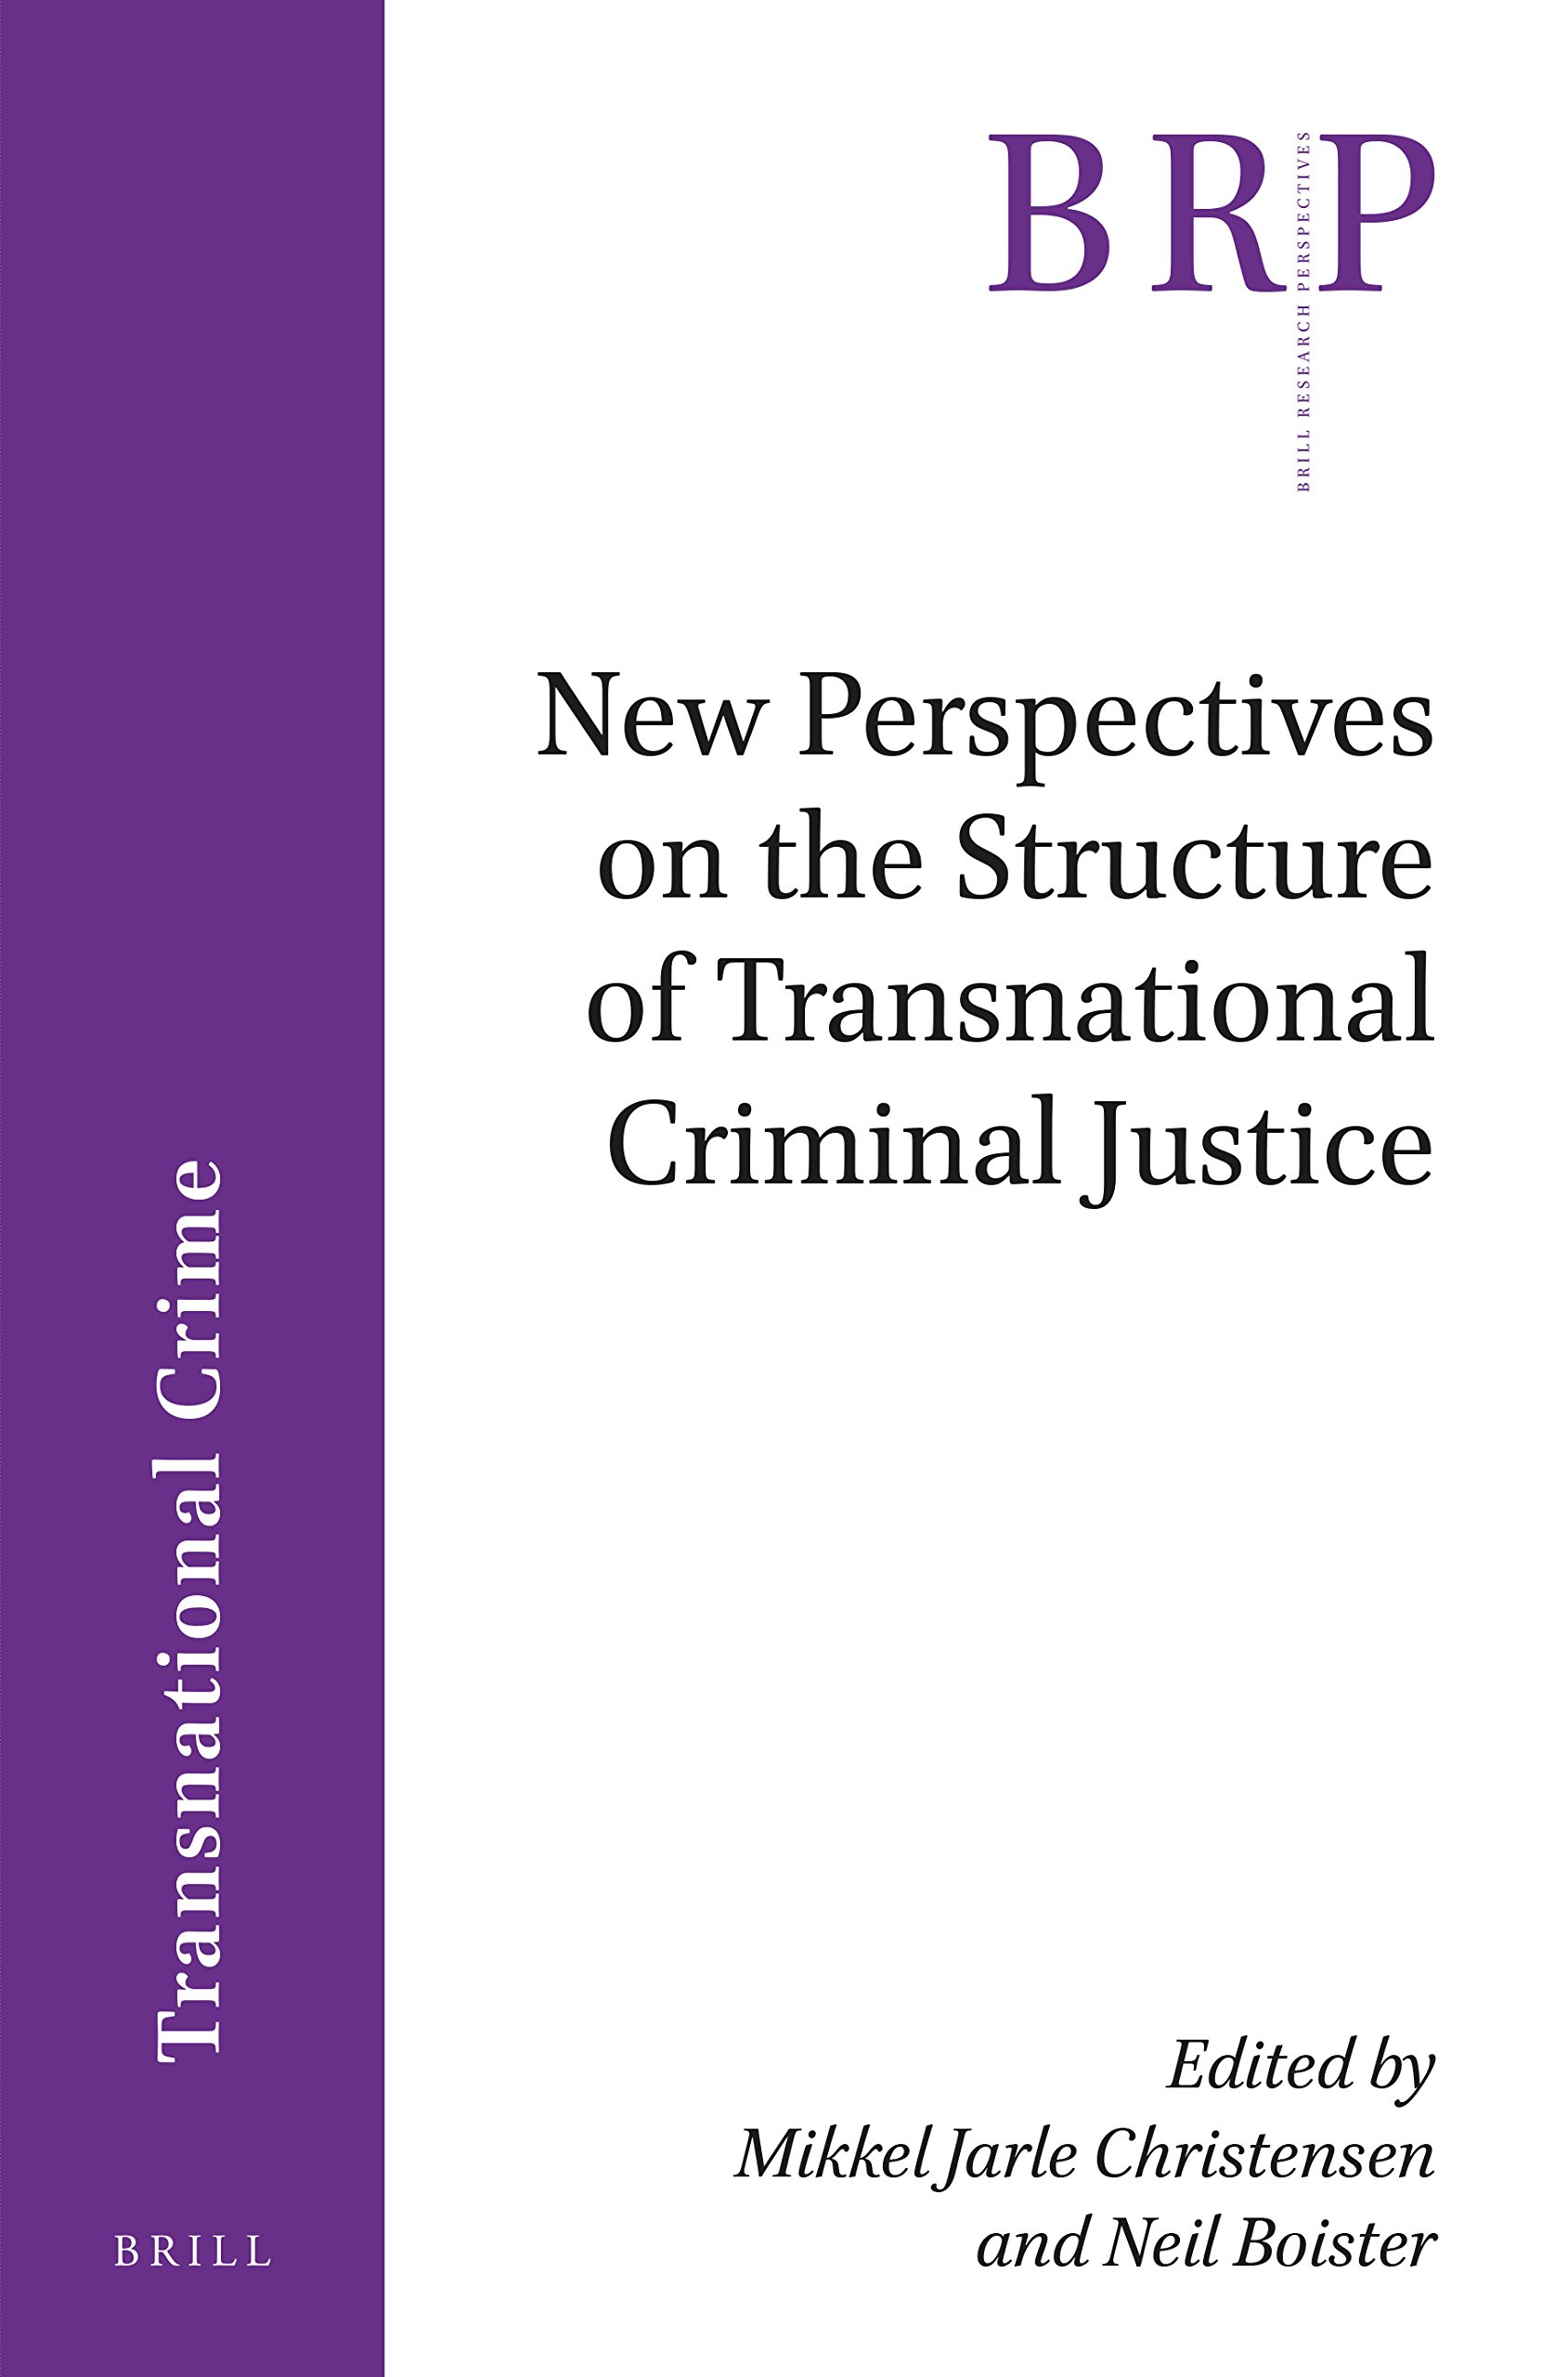 Download New Perspectives on the Structure of Transnational Criminal Justice (Brill Research Perspectives) pdf epub